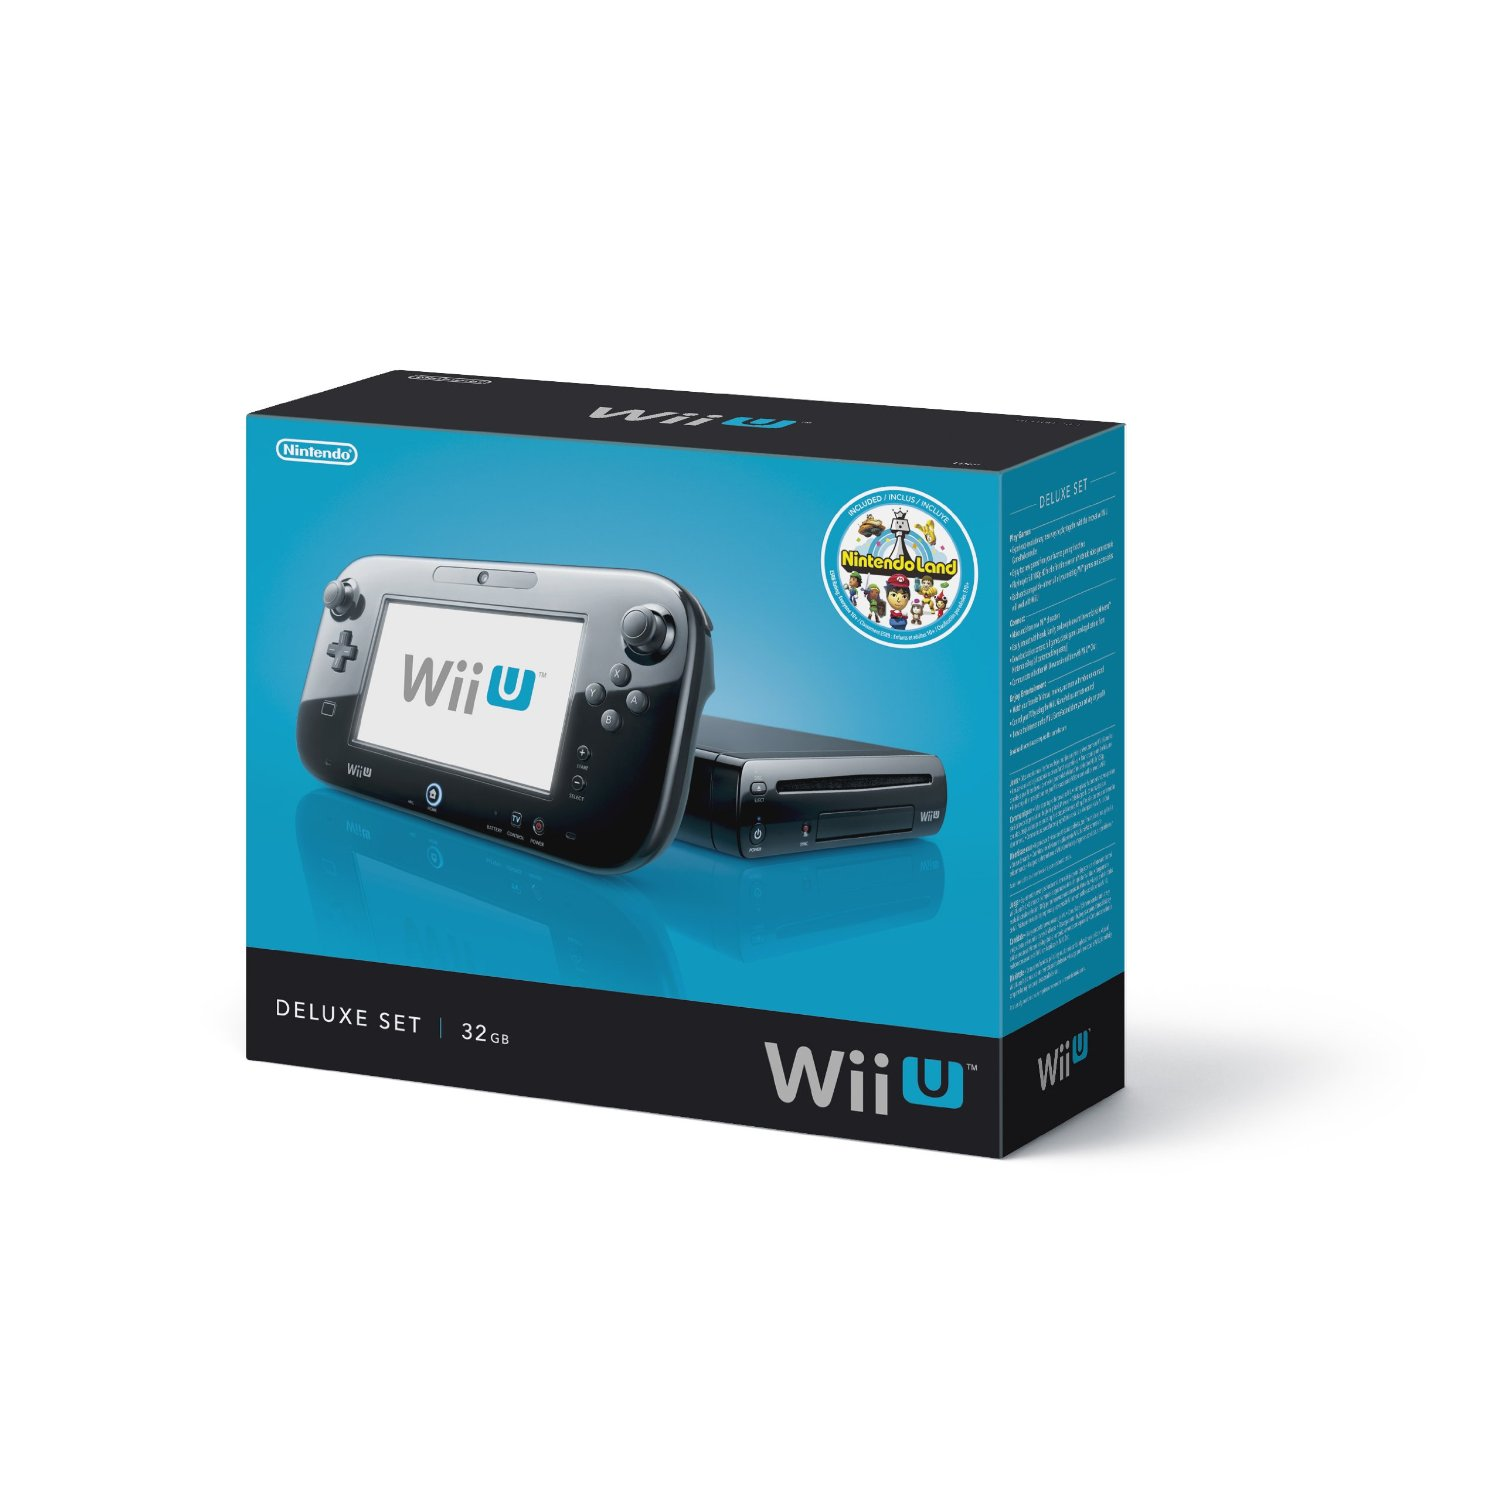 Wii U Gaming System Giveaway